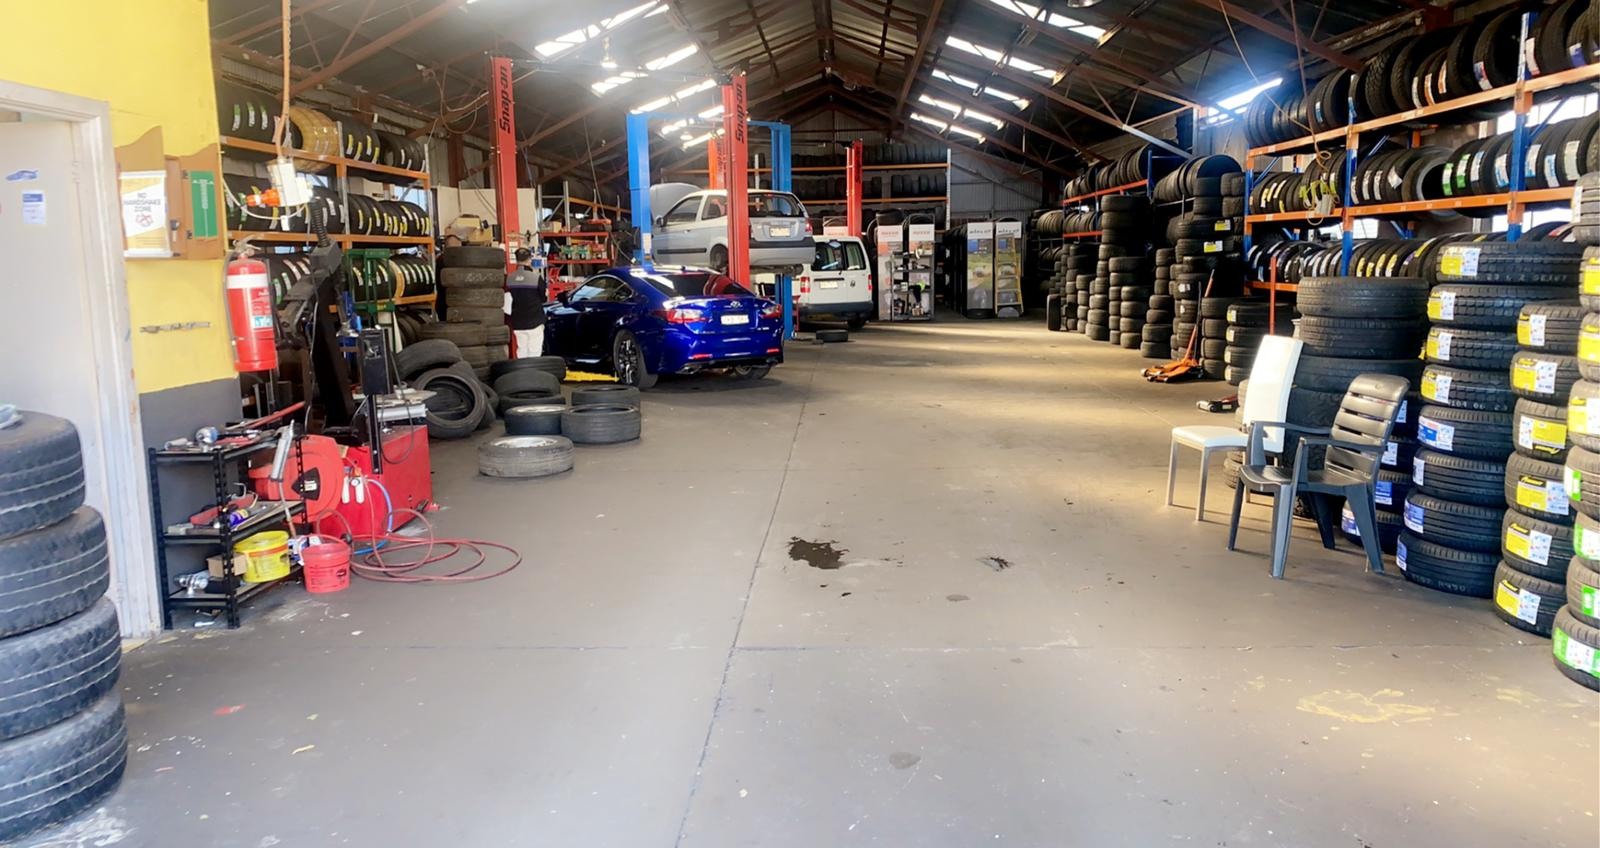 Auto Mechanic Workshop business for sale in Dandenong